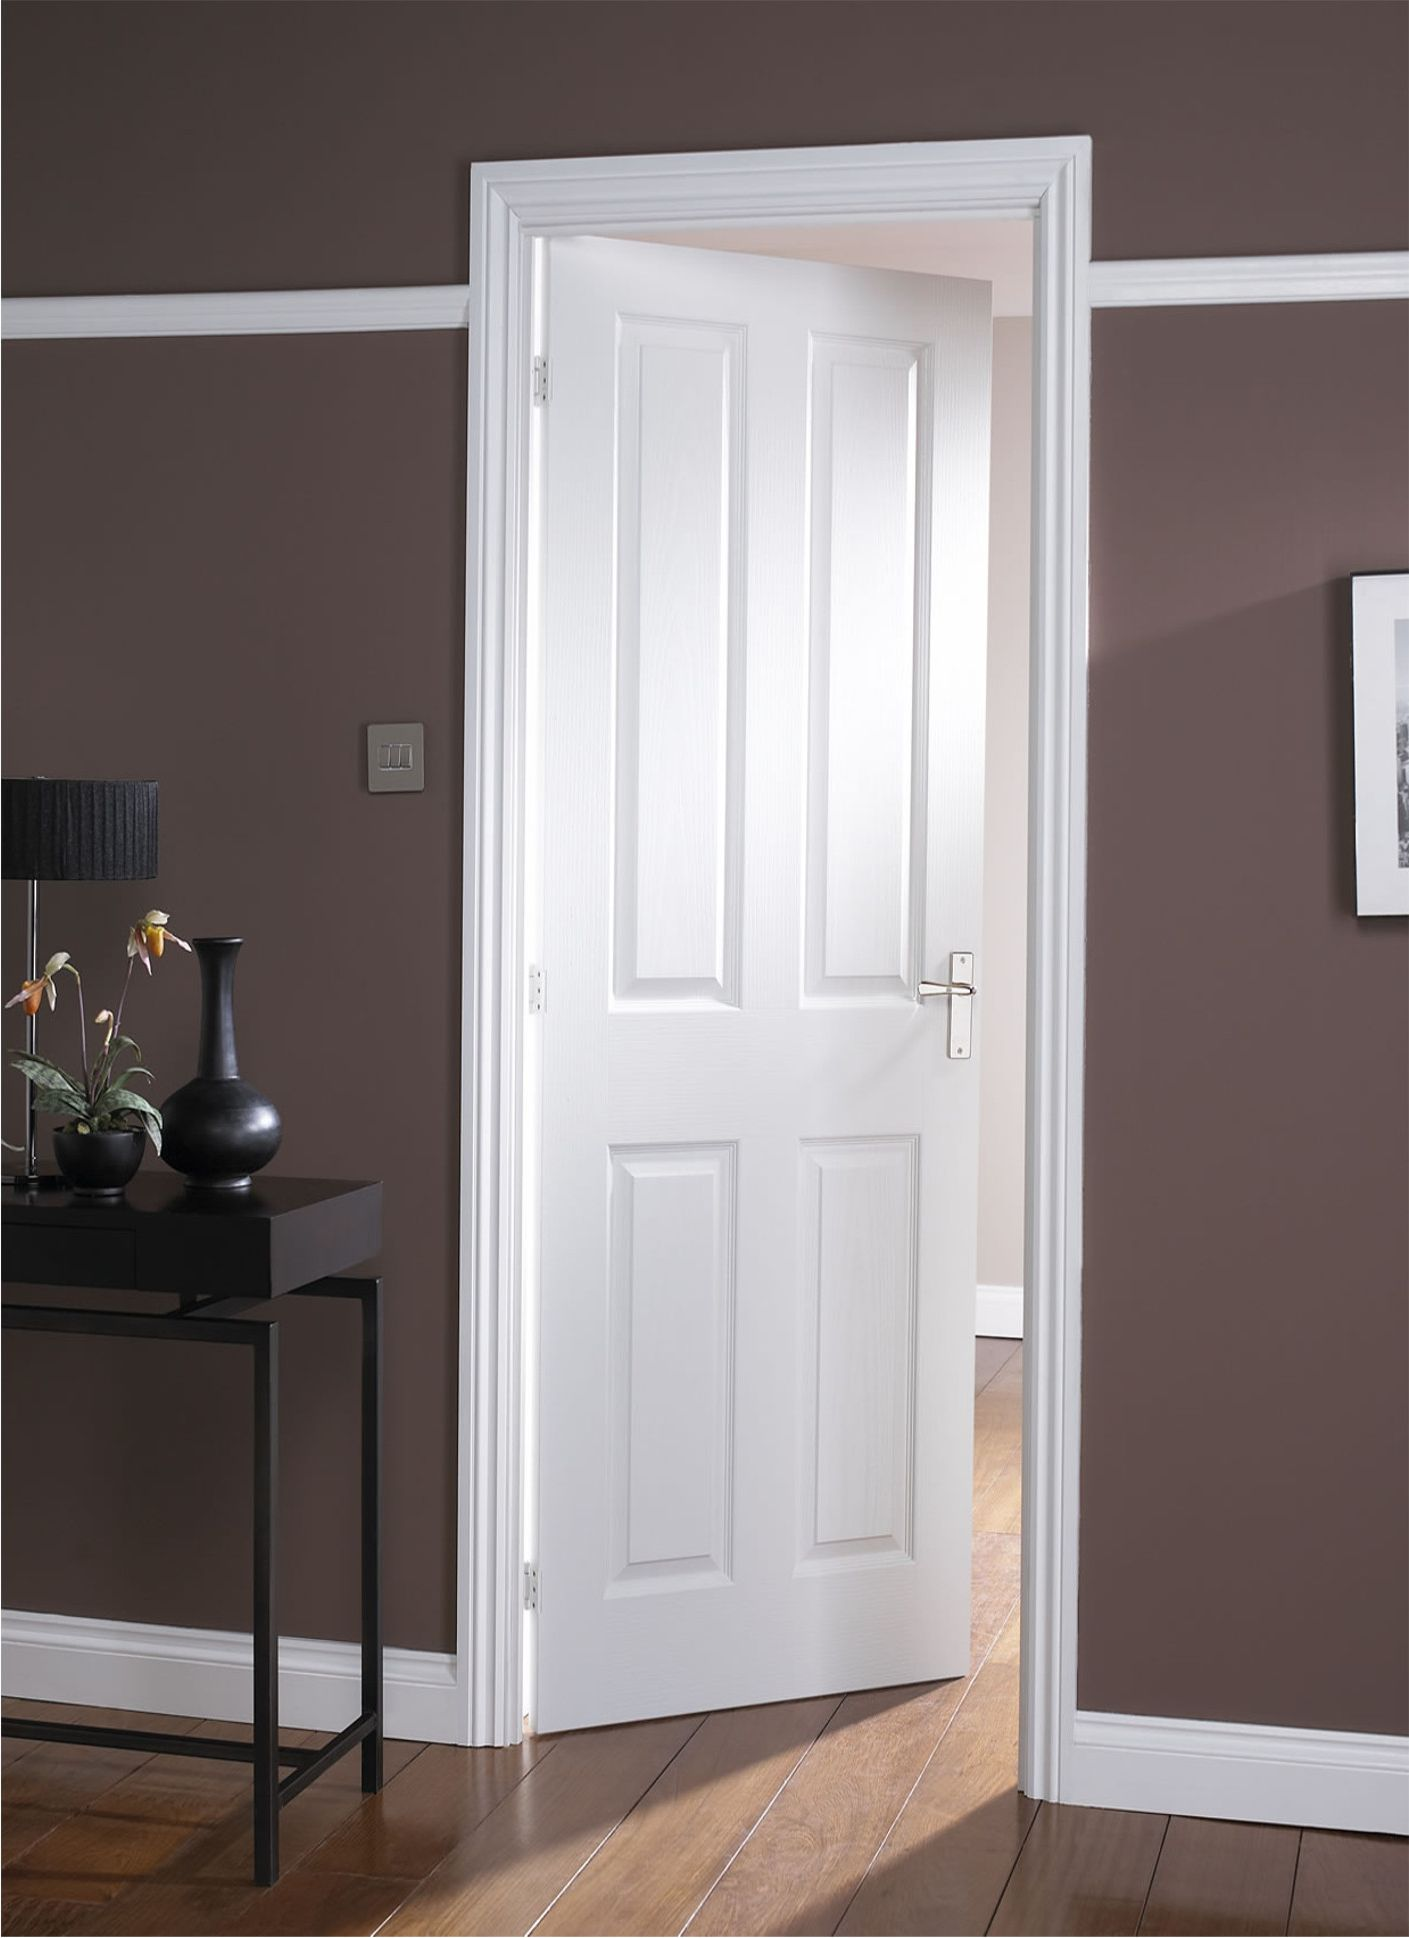 White interior masonite door to a dark room